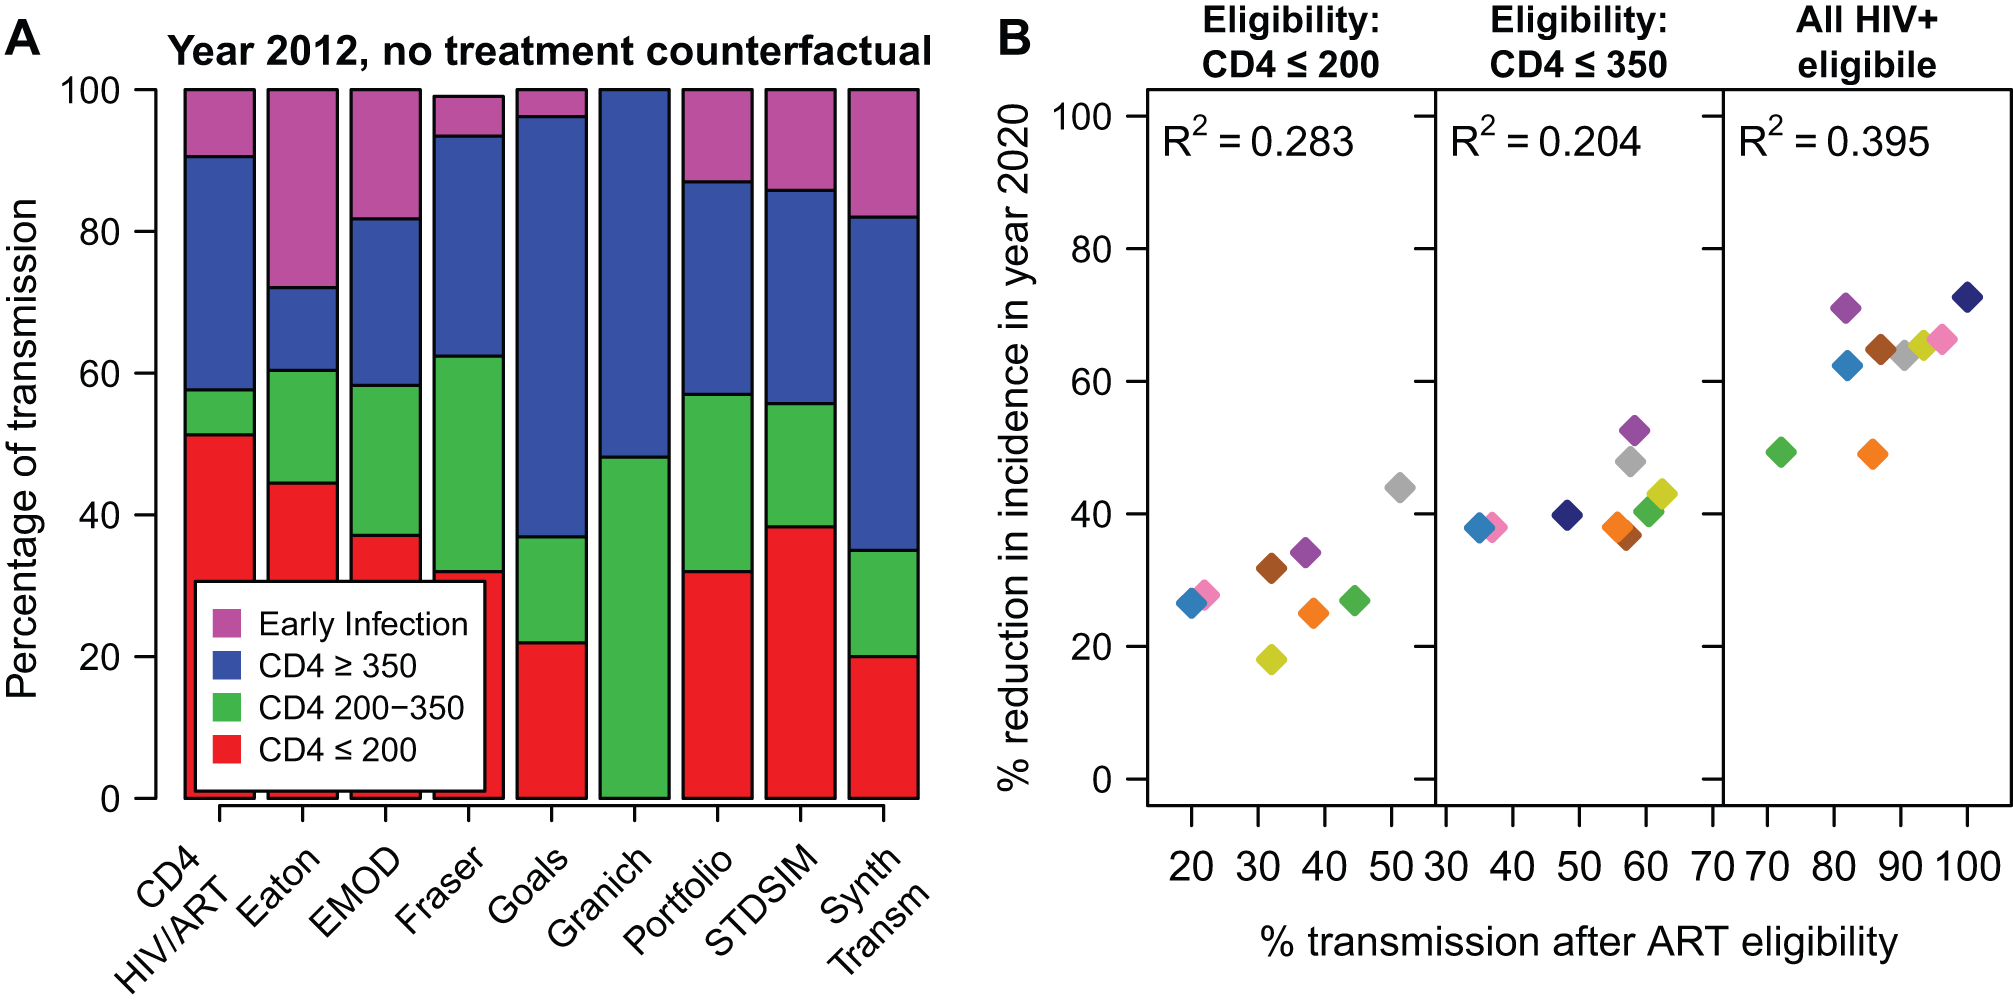 Impact of treatment by transmission in each CD4 category.